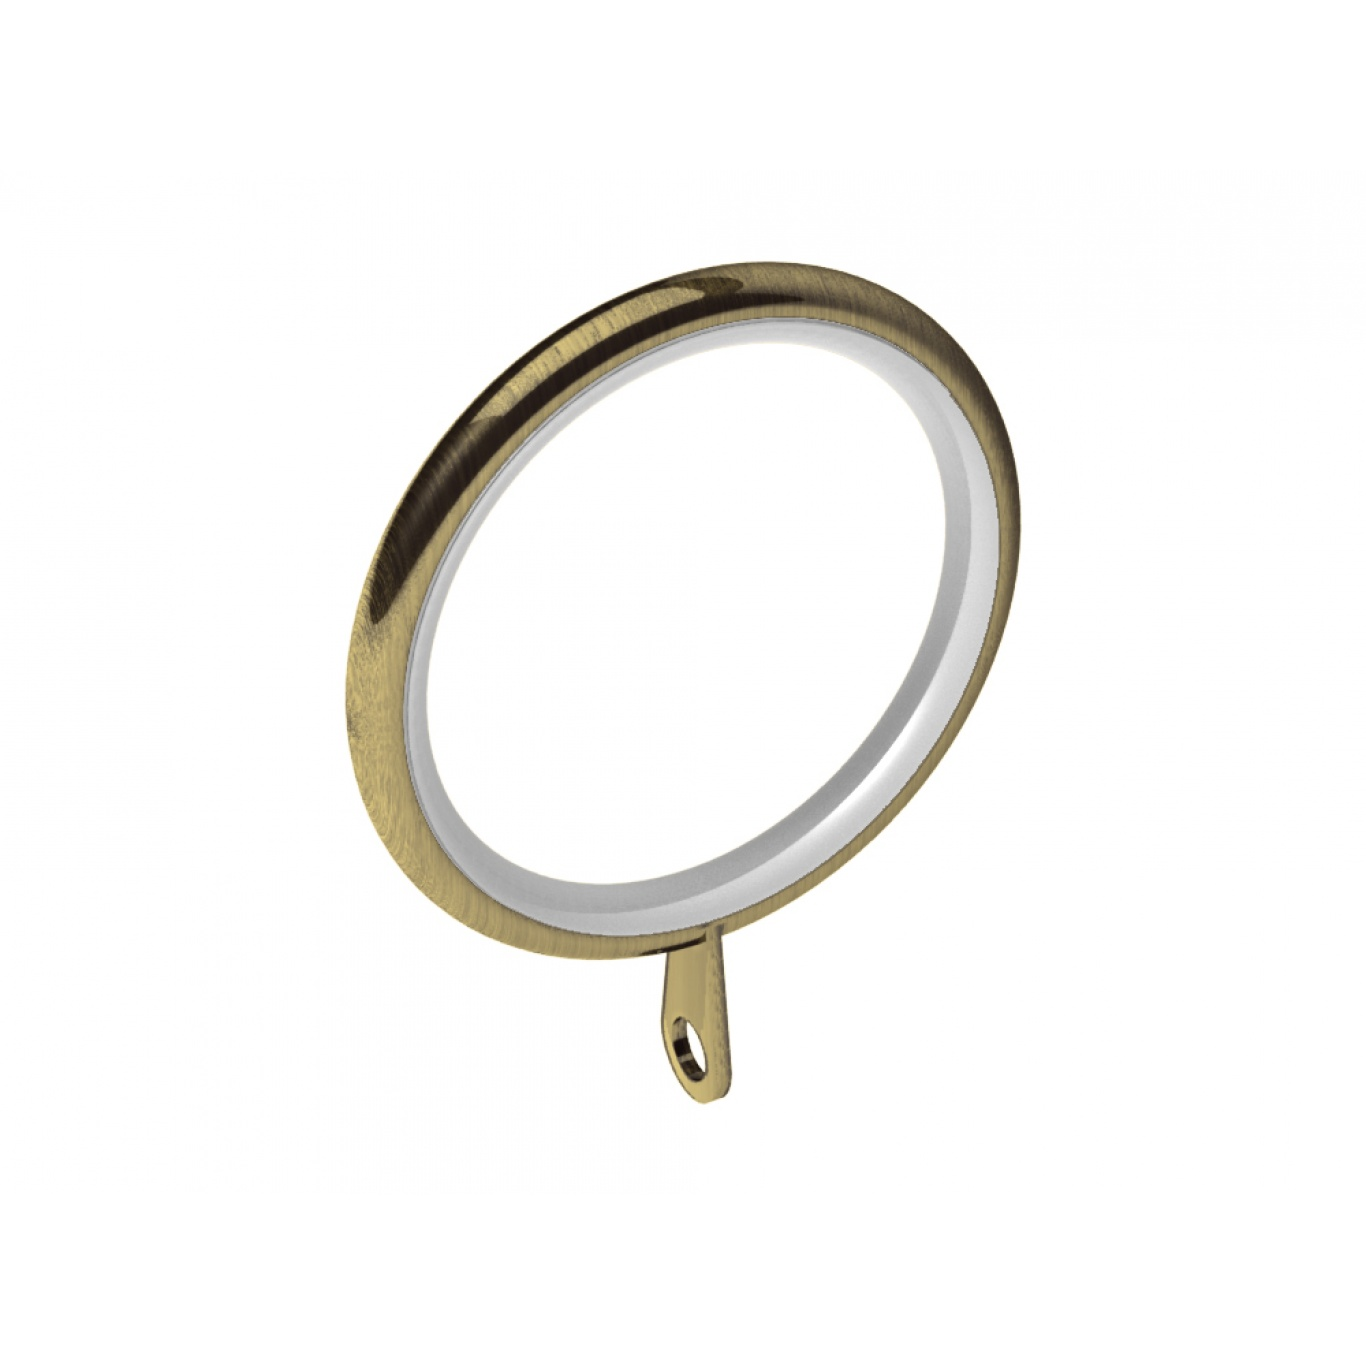 Image of Swish Elements 28mm Antique Brass Rings Pack of 4